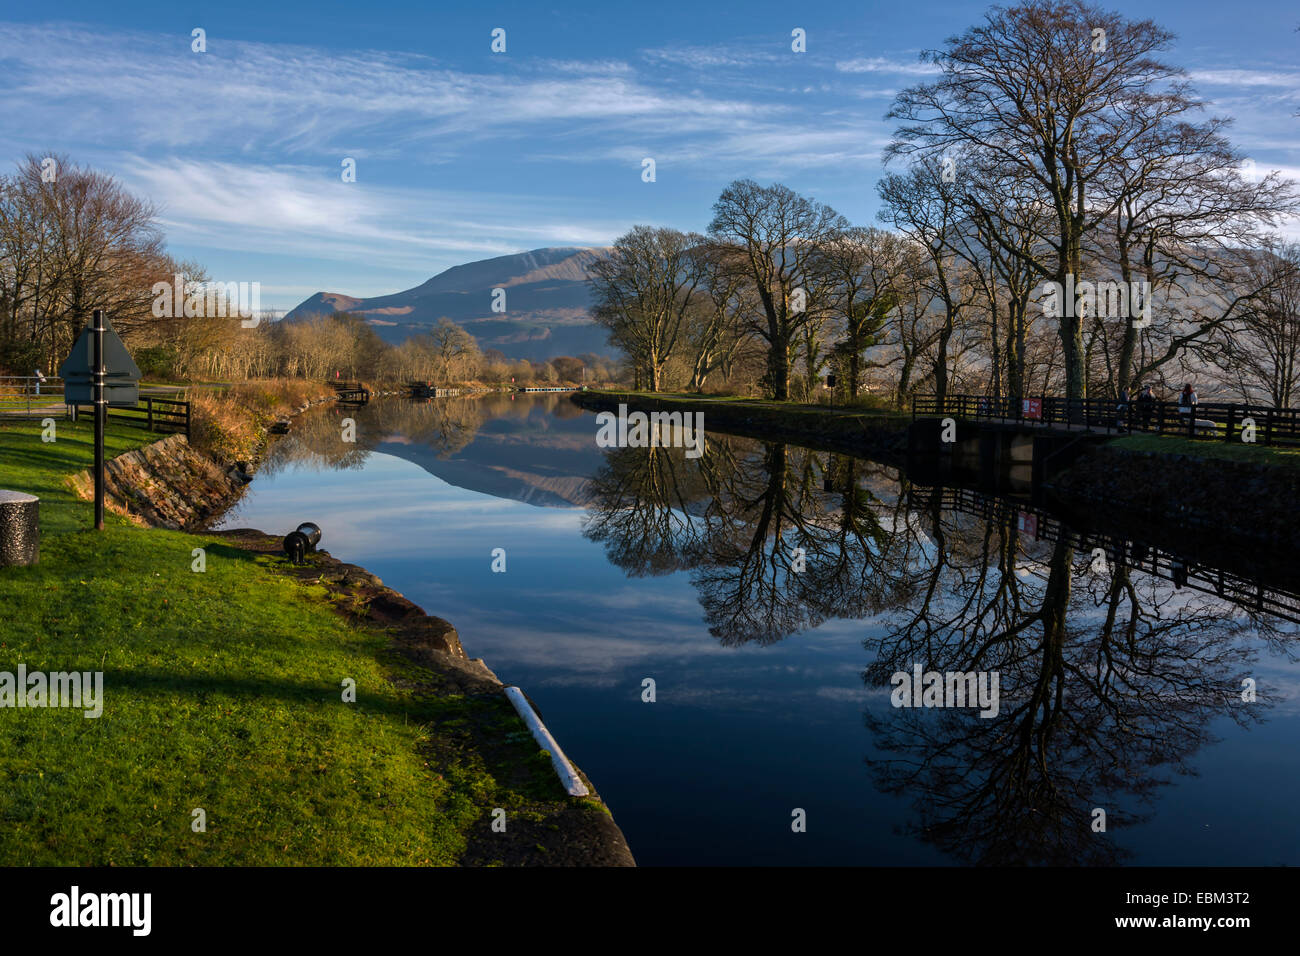 Caledonian Canal, Corpach, Fort William, Scotland, United Kingdom Stock Photo